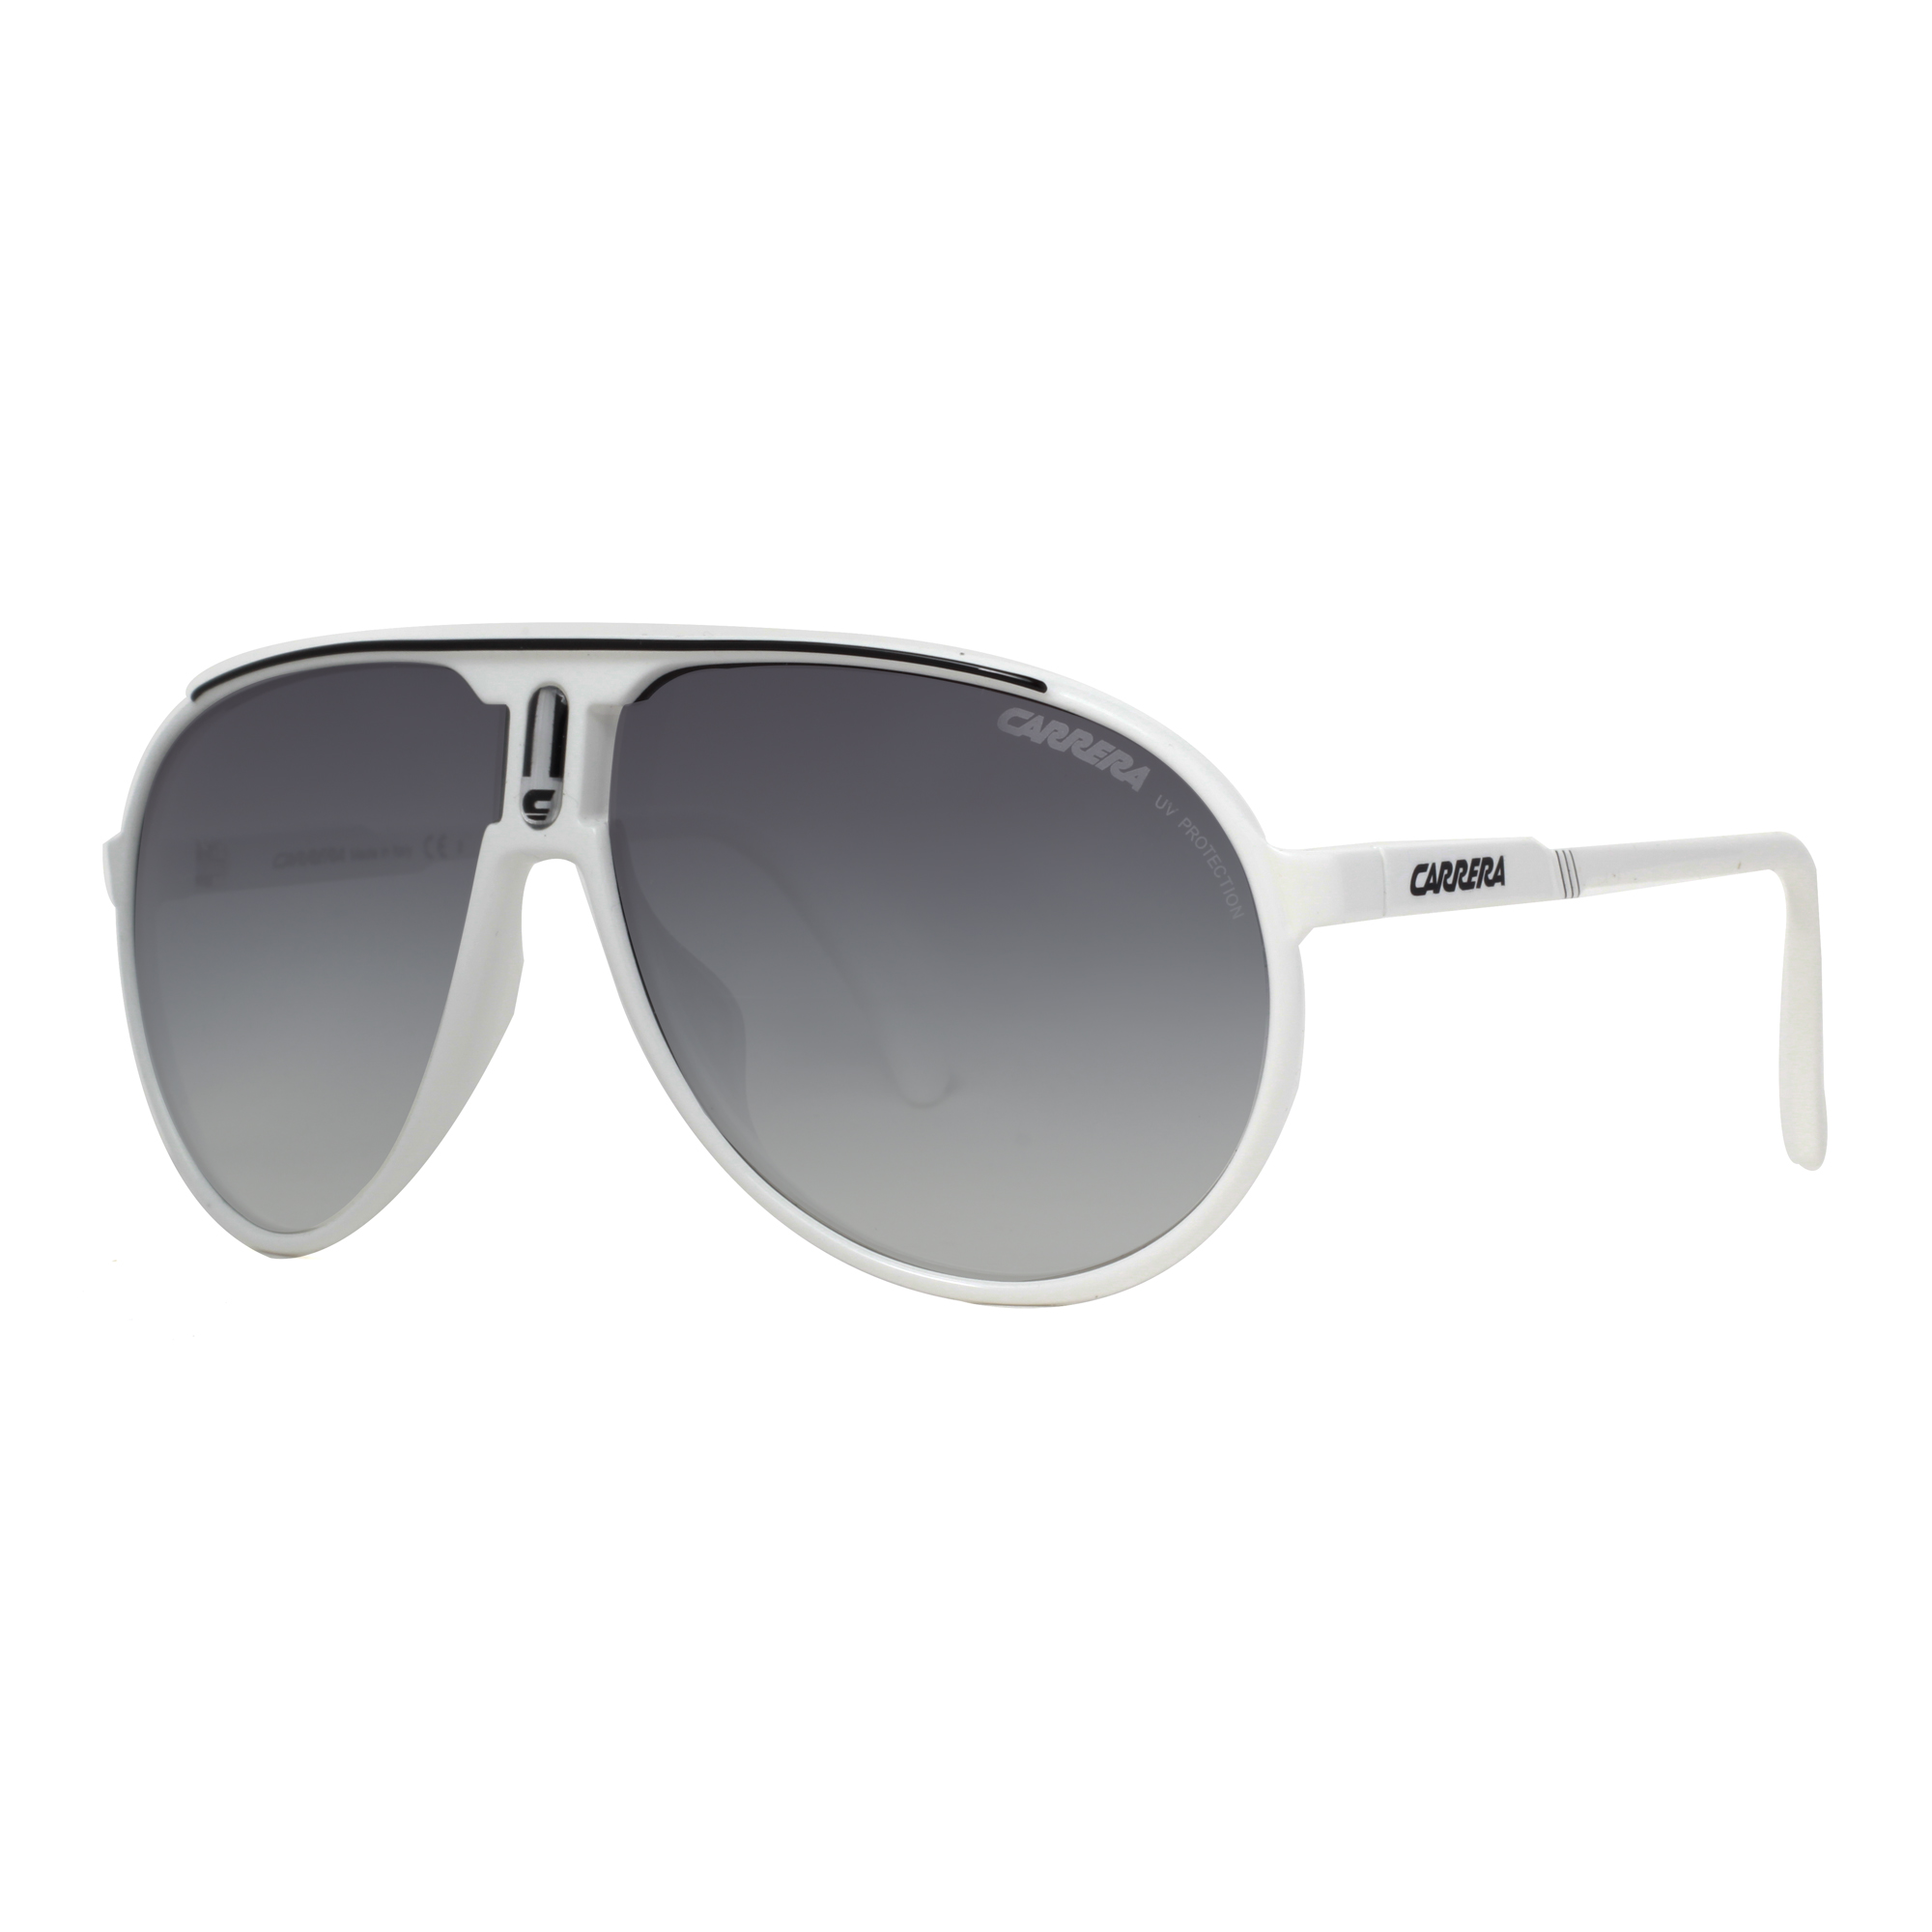 38880b0ae13c Carrera Endurance l s Aviator Sunglasses